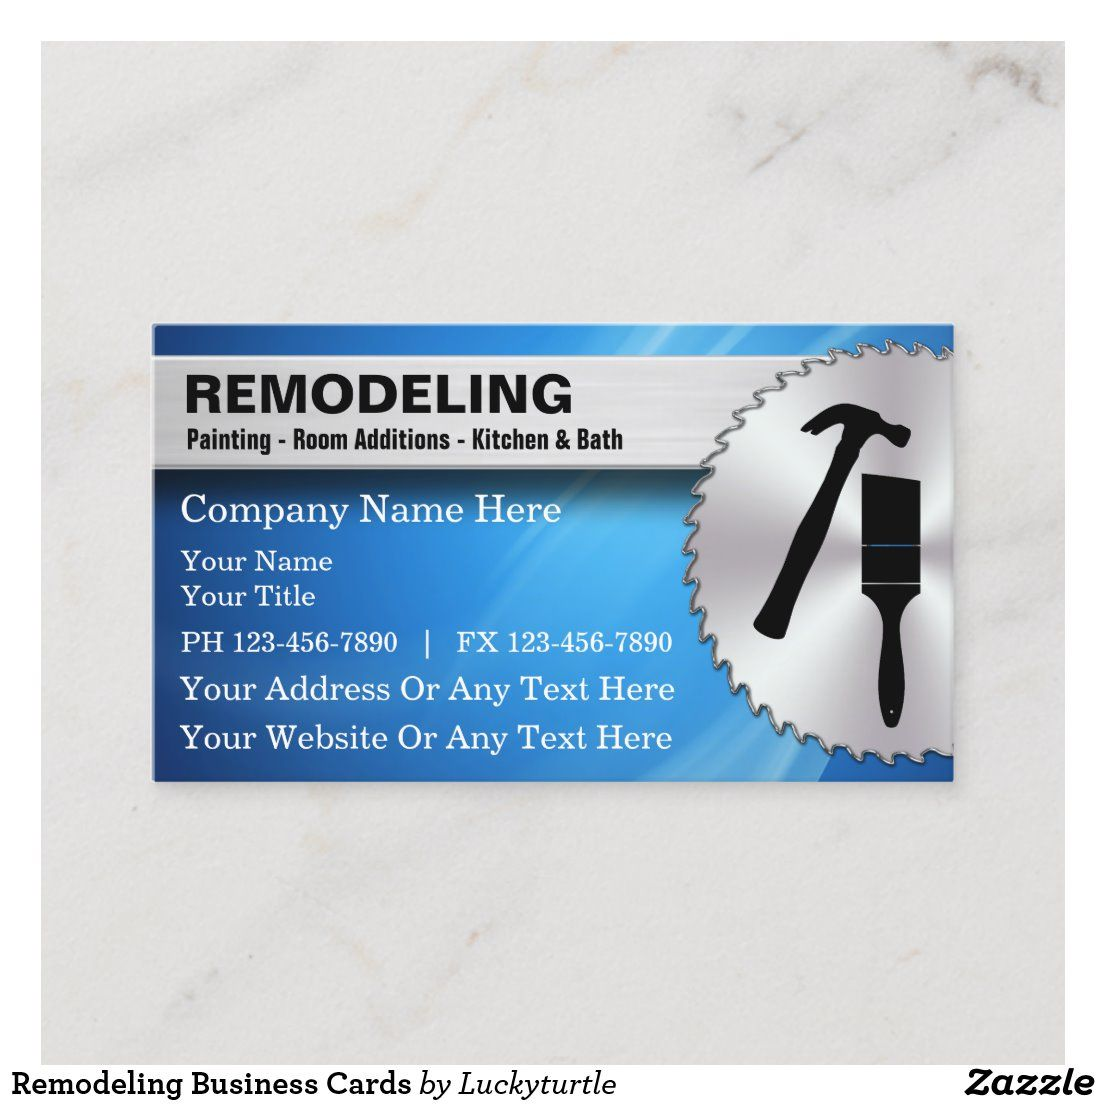 Remodeling Business Cards Zazzle Com Remodeling Business Construction Business Cards Remodel